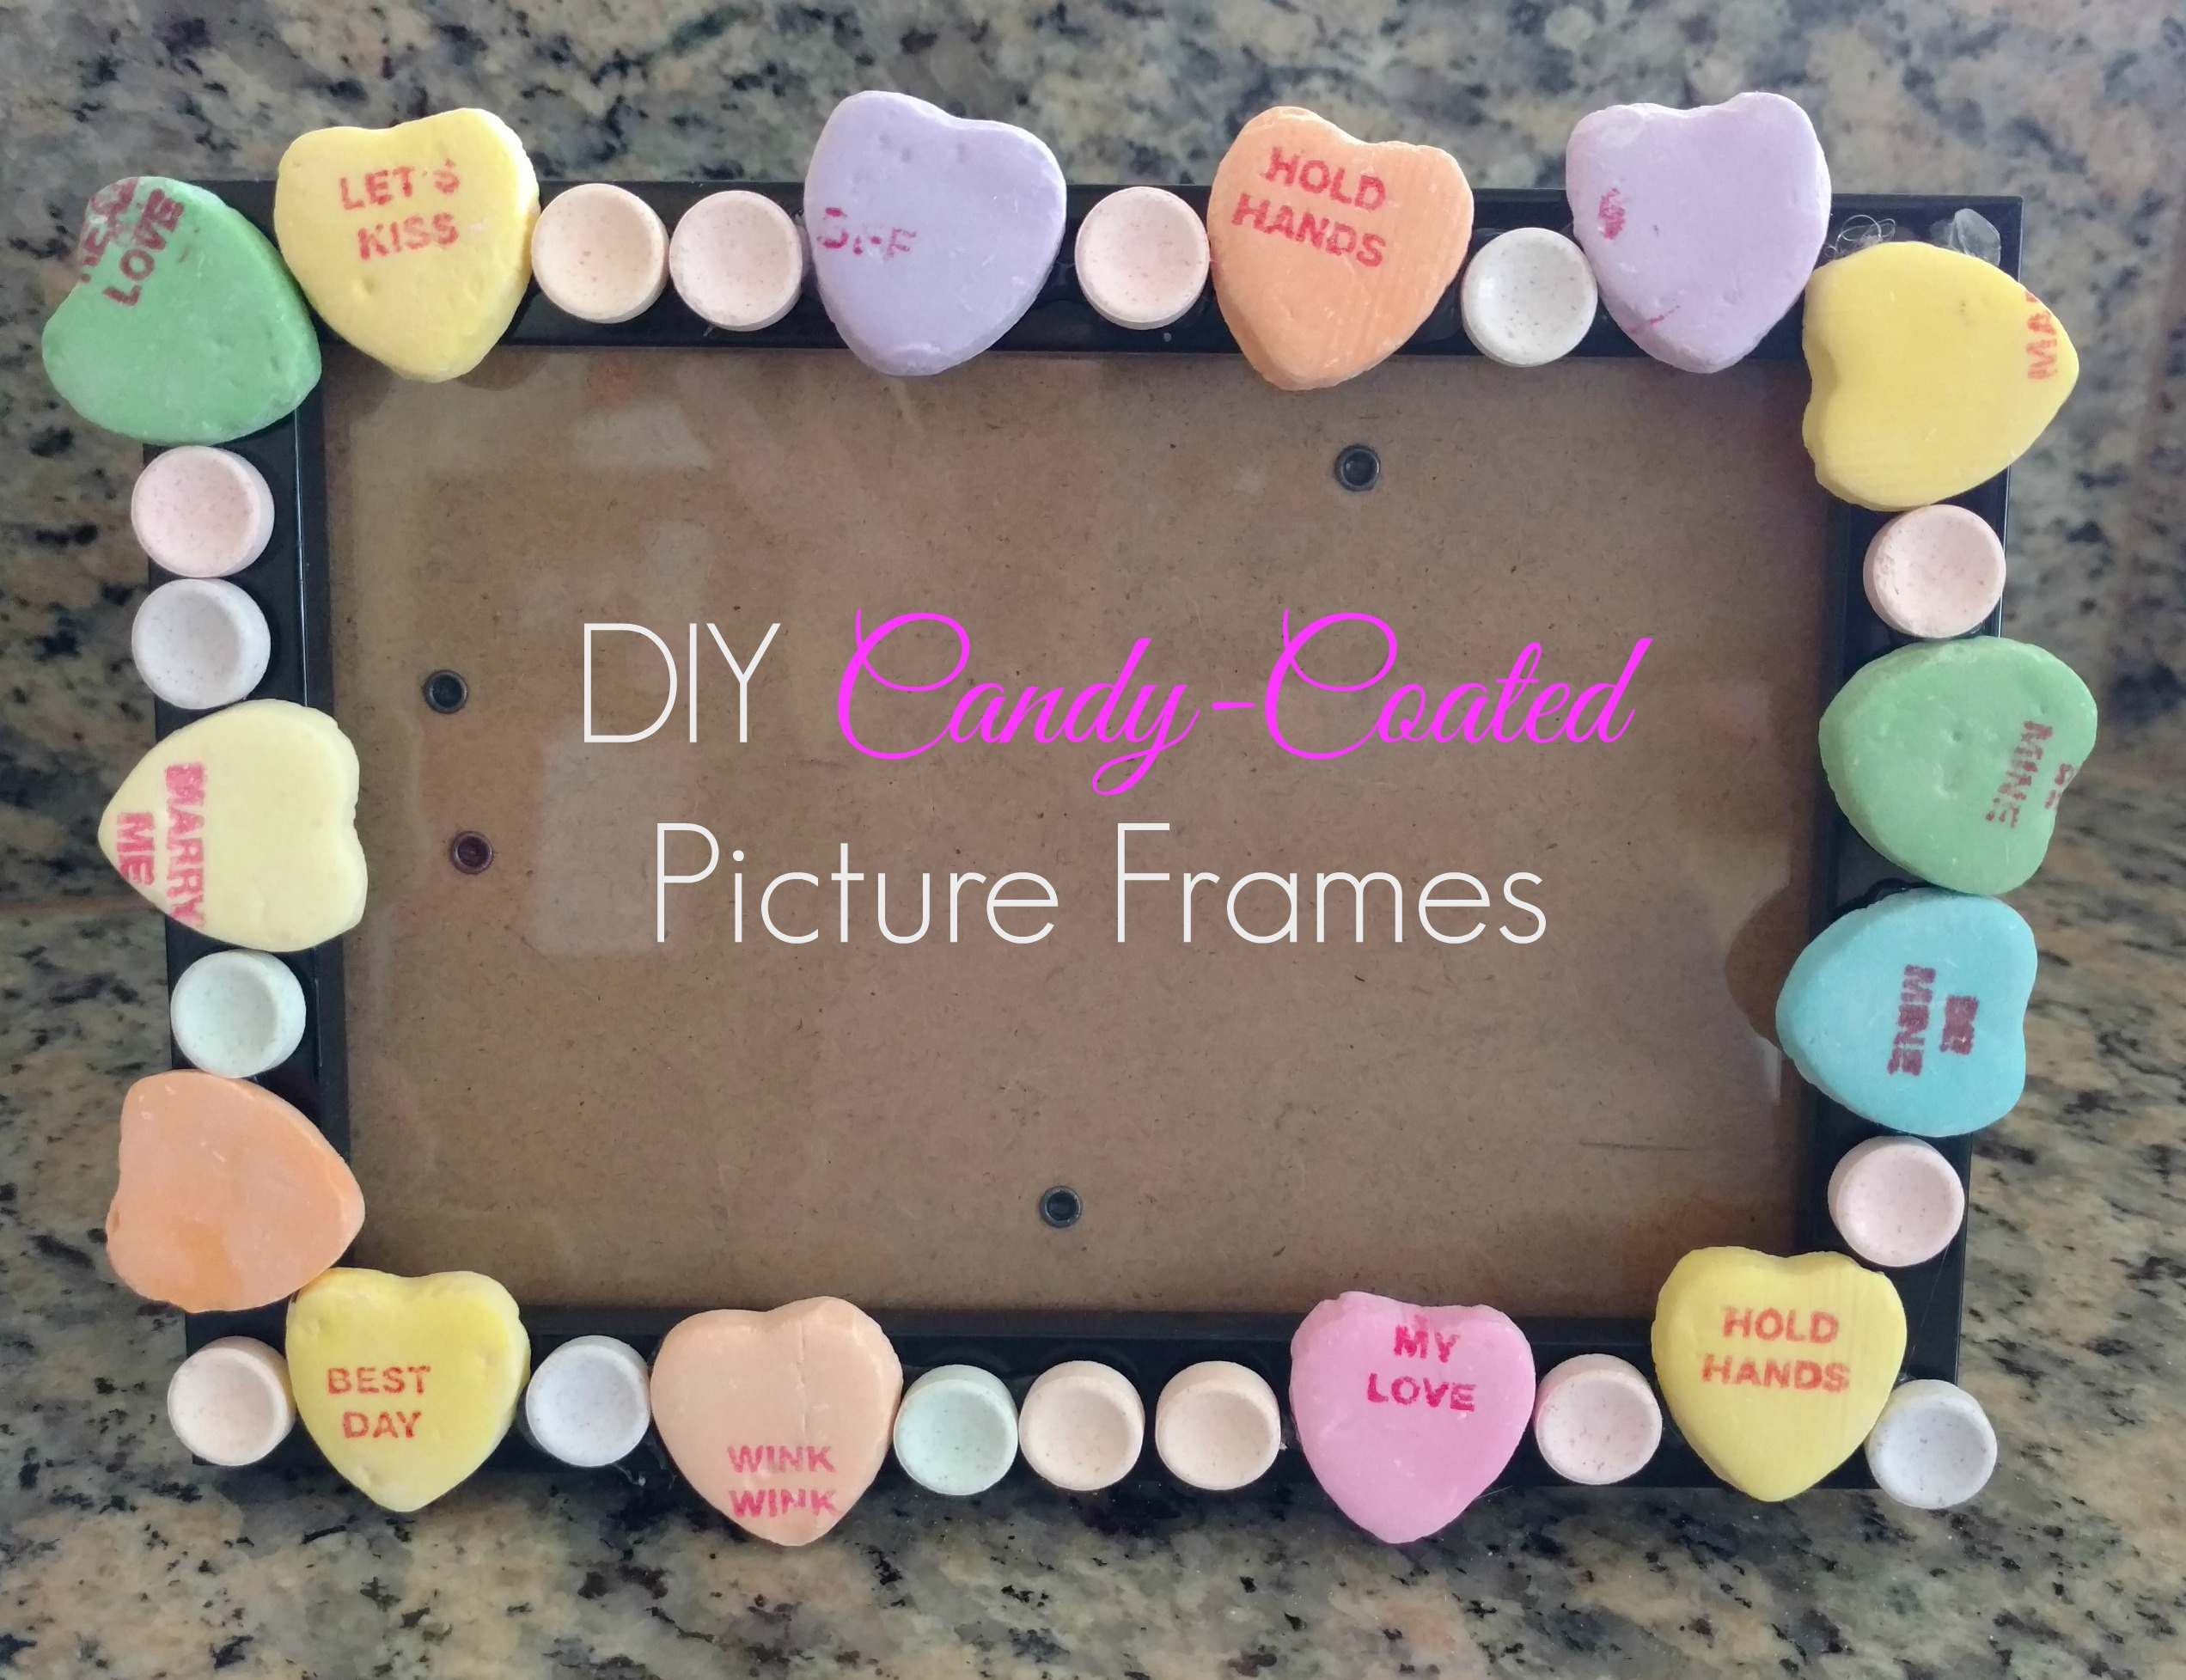 DIY Candy-Coated Picture Frames - The Naughty Mommy